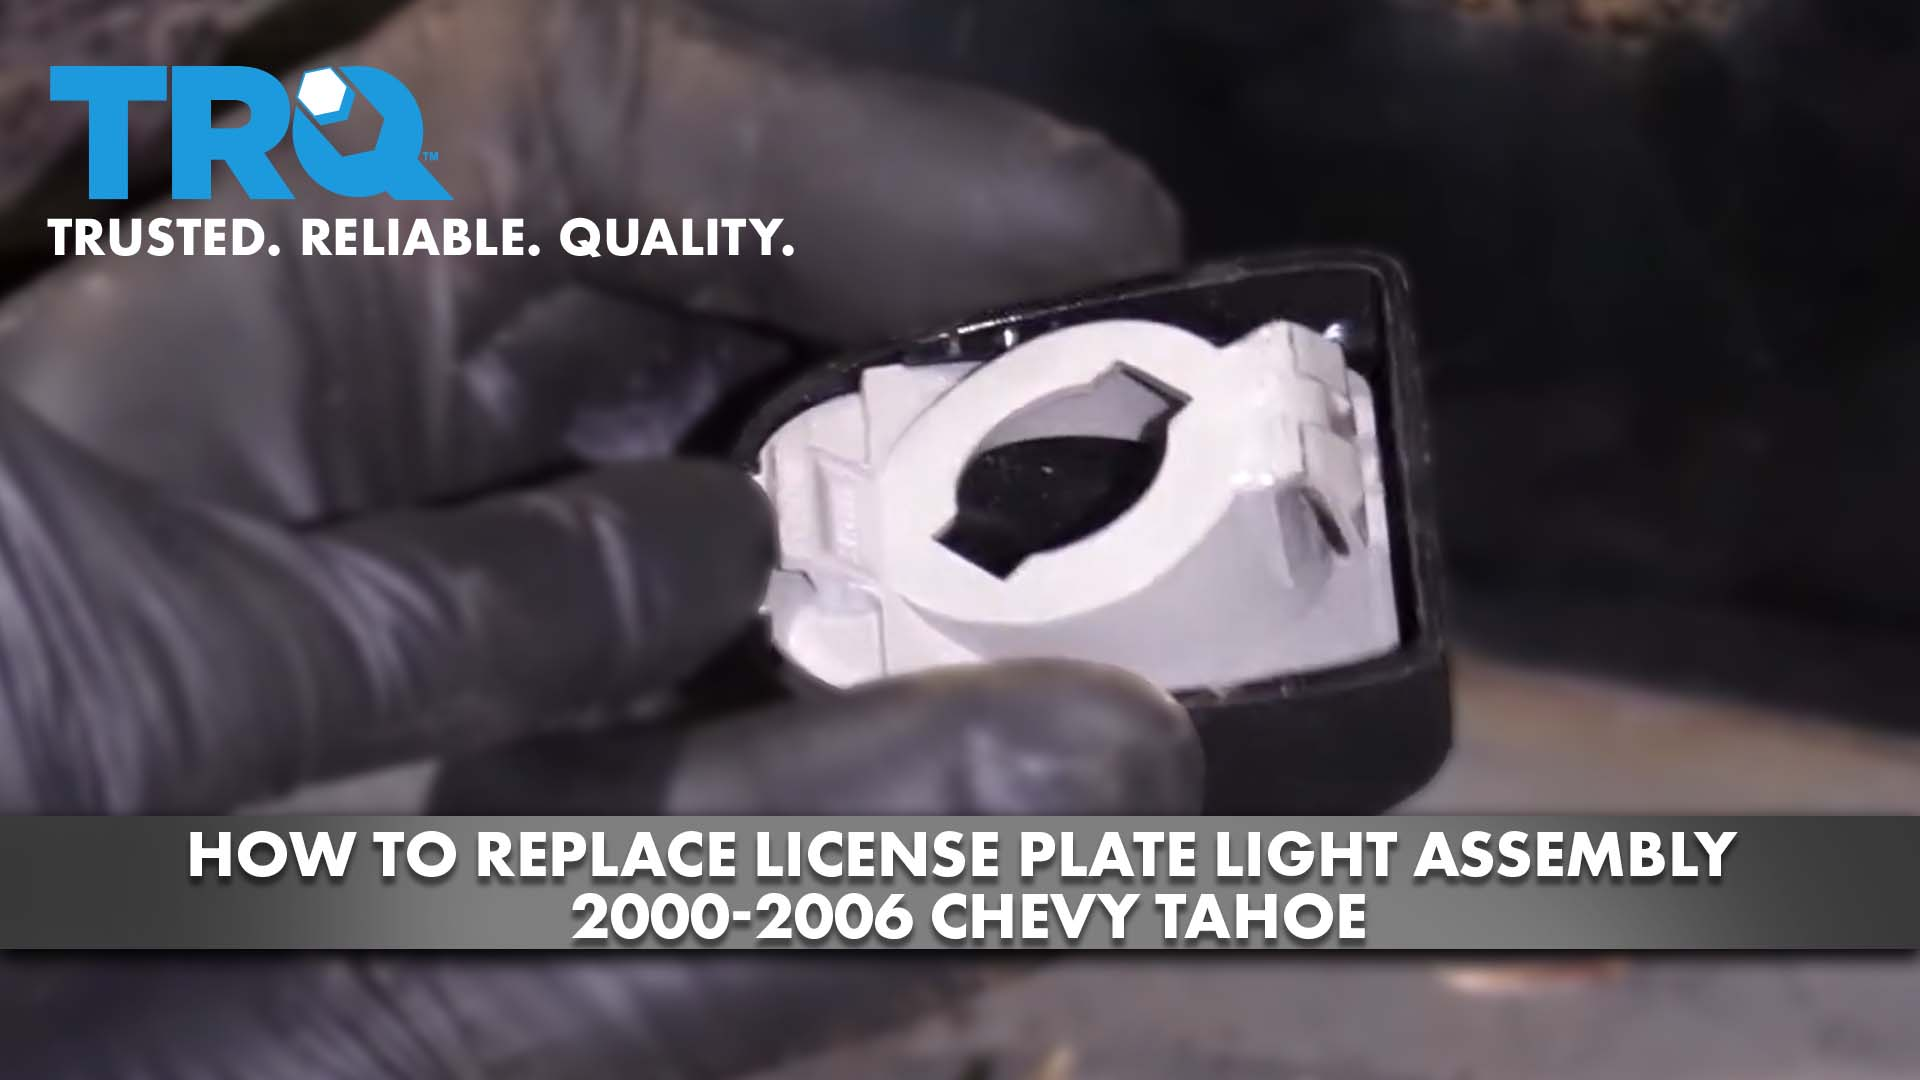 How to Replace License Plate Light Assembly 2000-06 Chevy Tahoe